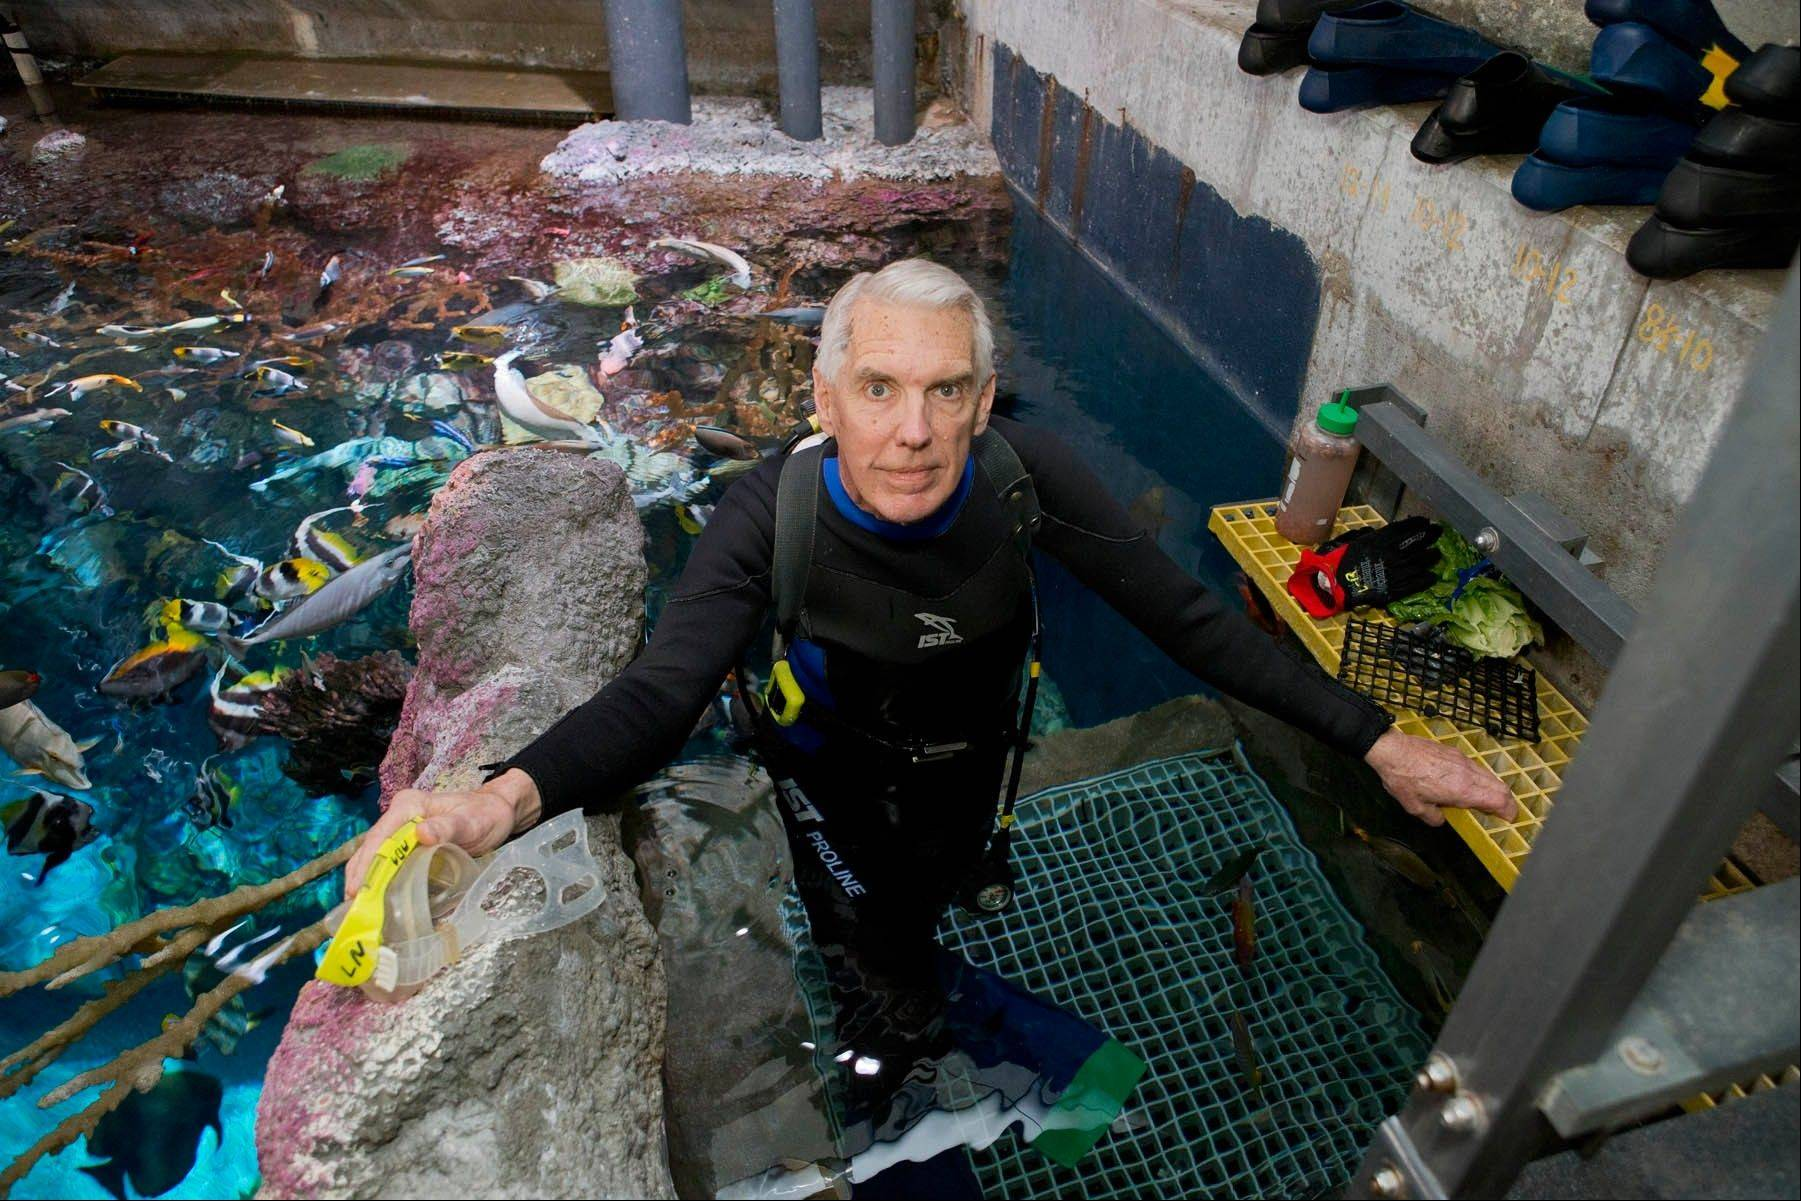 Lou Nesslar spends at least two days a week volunteering at the Shedd Aquarium, where he has put in more than 8,000 hours since he started 10 years ago.